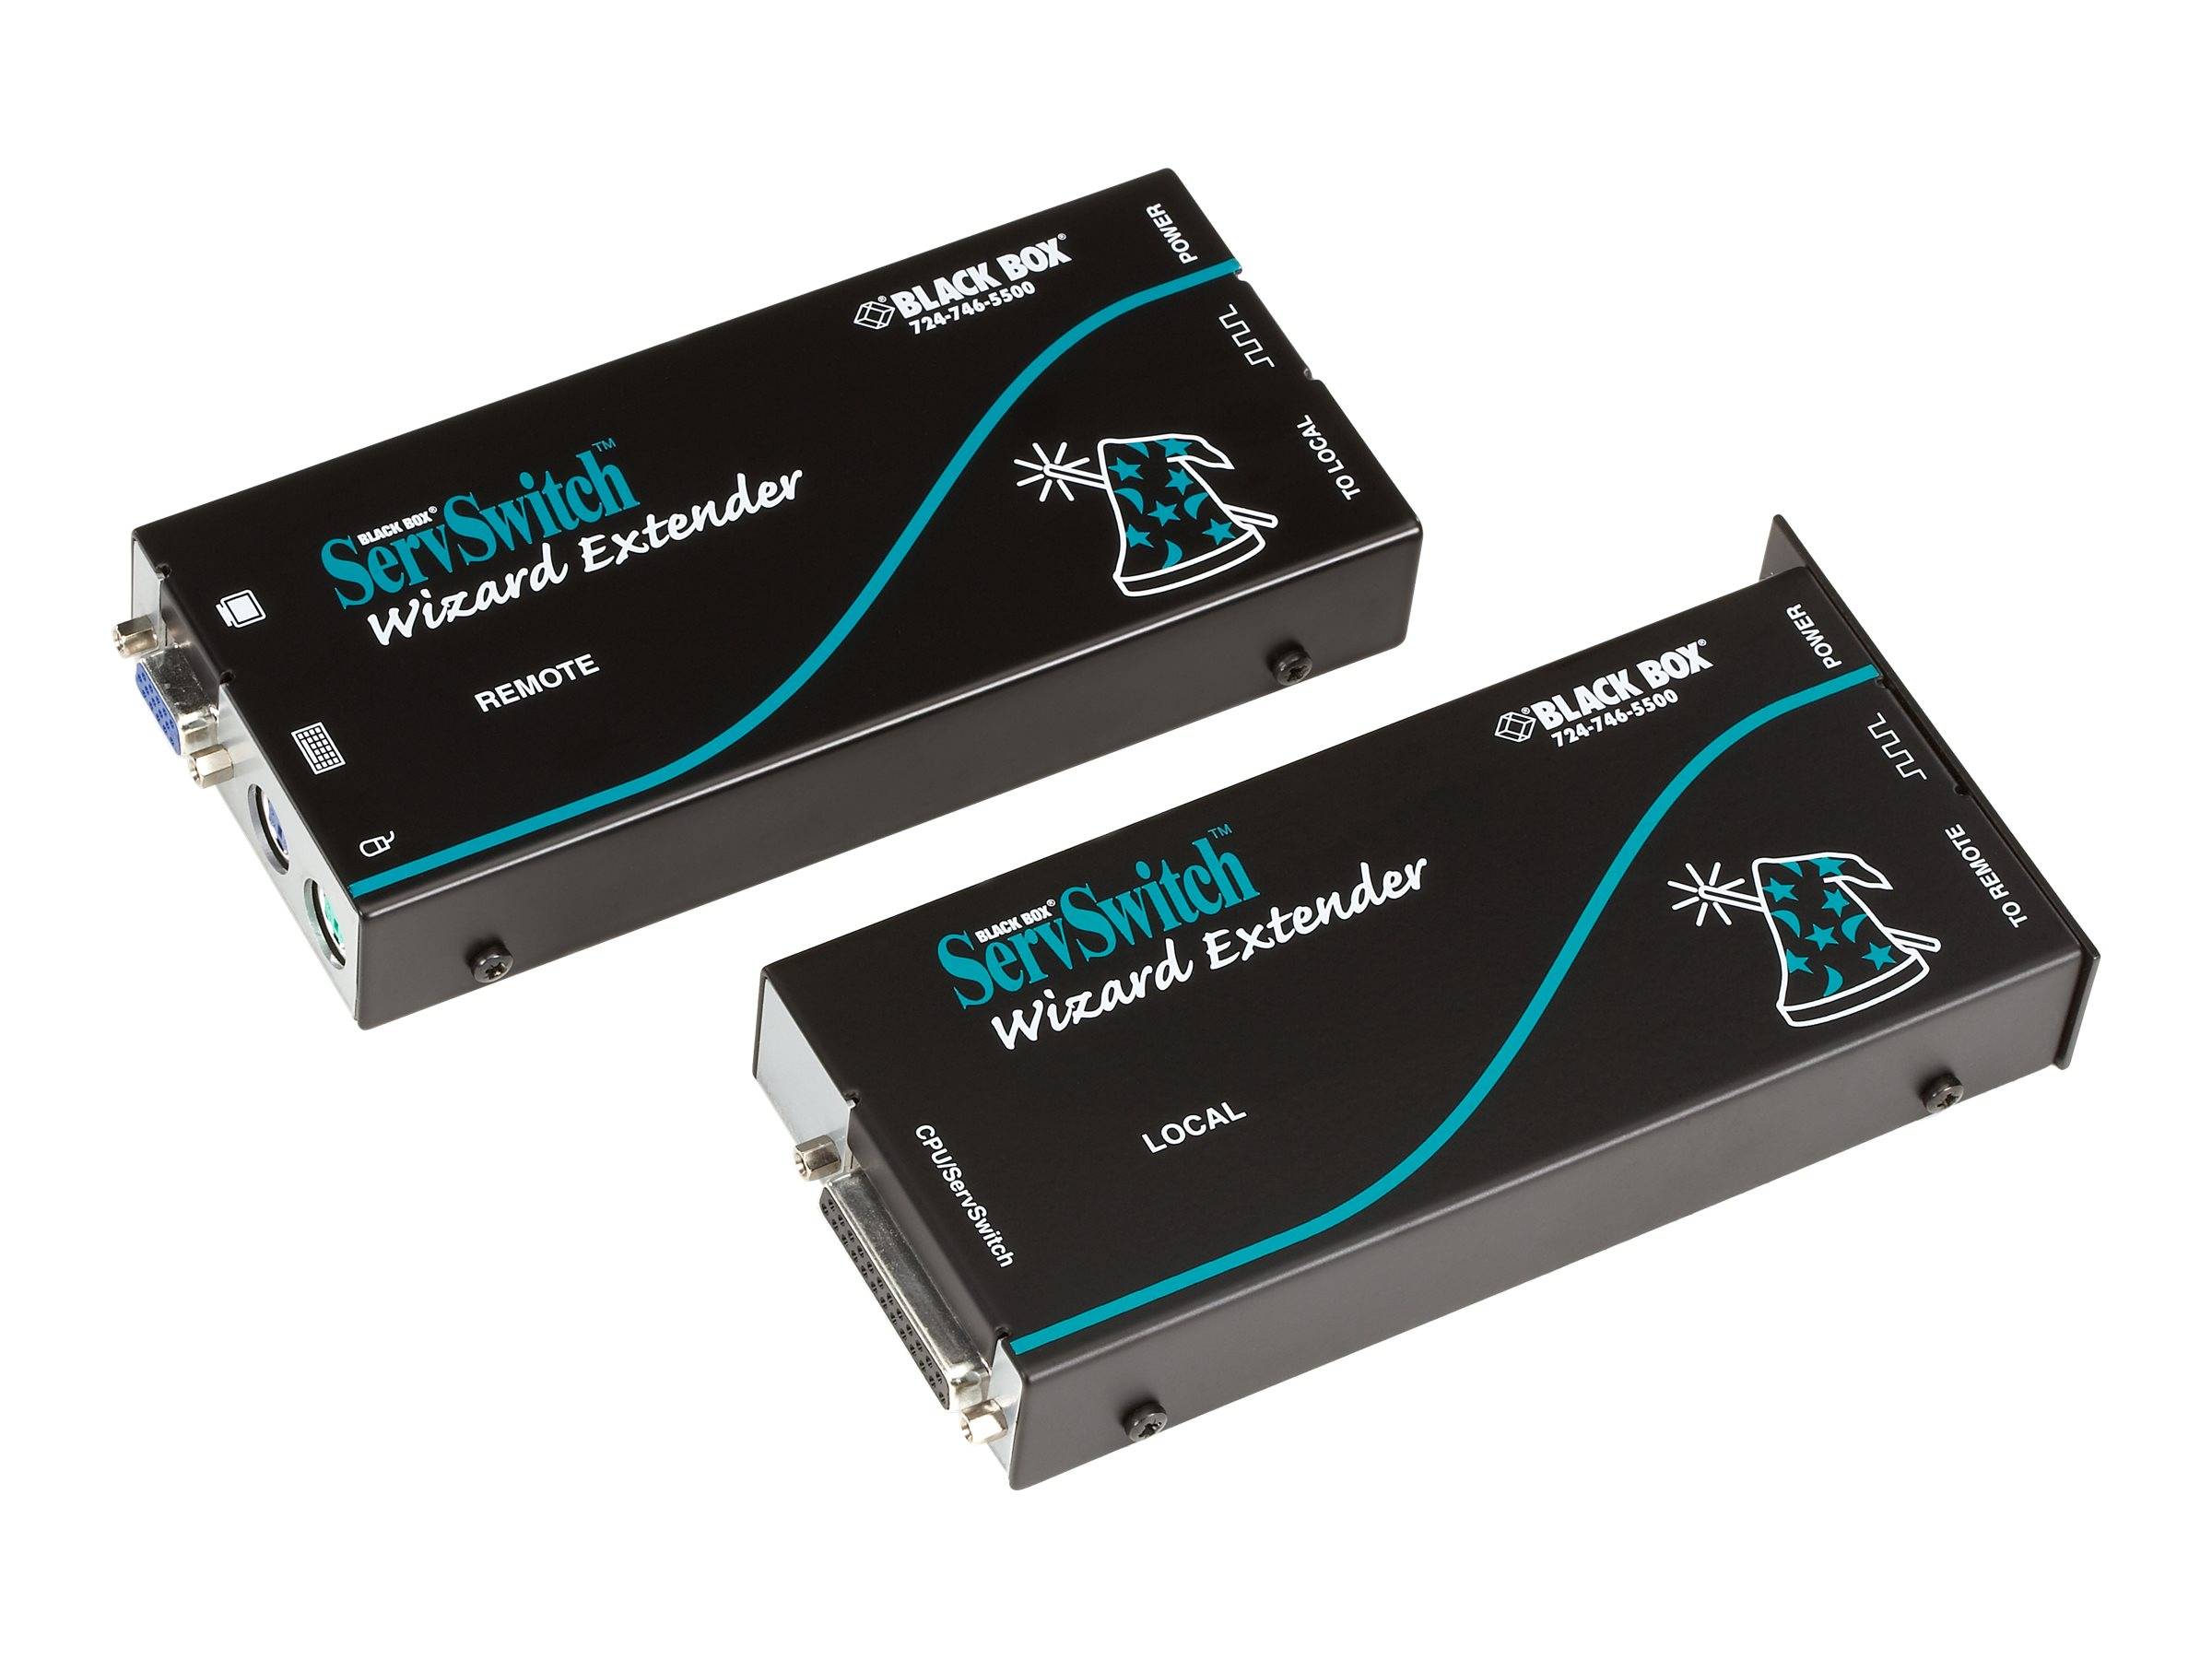 Black Box ServSwitch Wizard Extender Single-Access Serial Kit with Skew Compensation - KVM extender